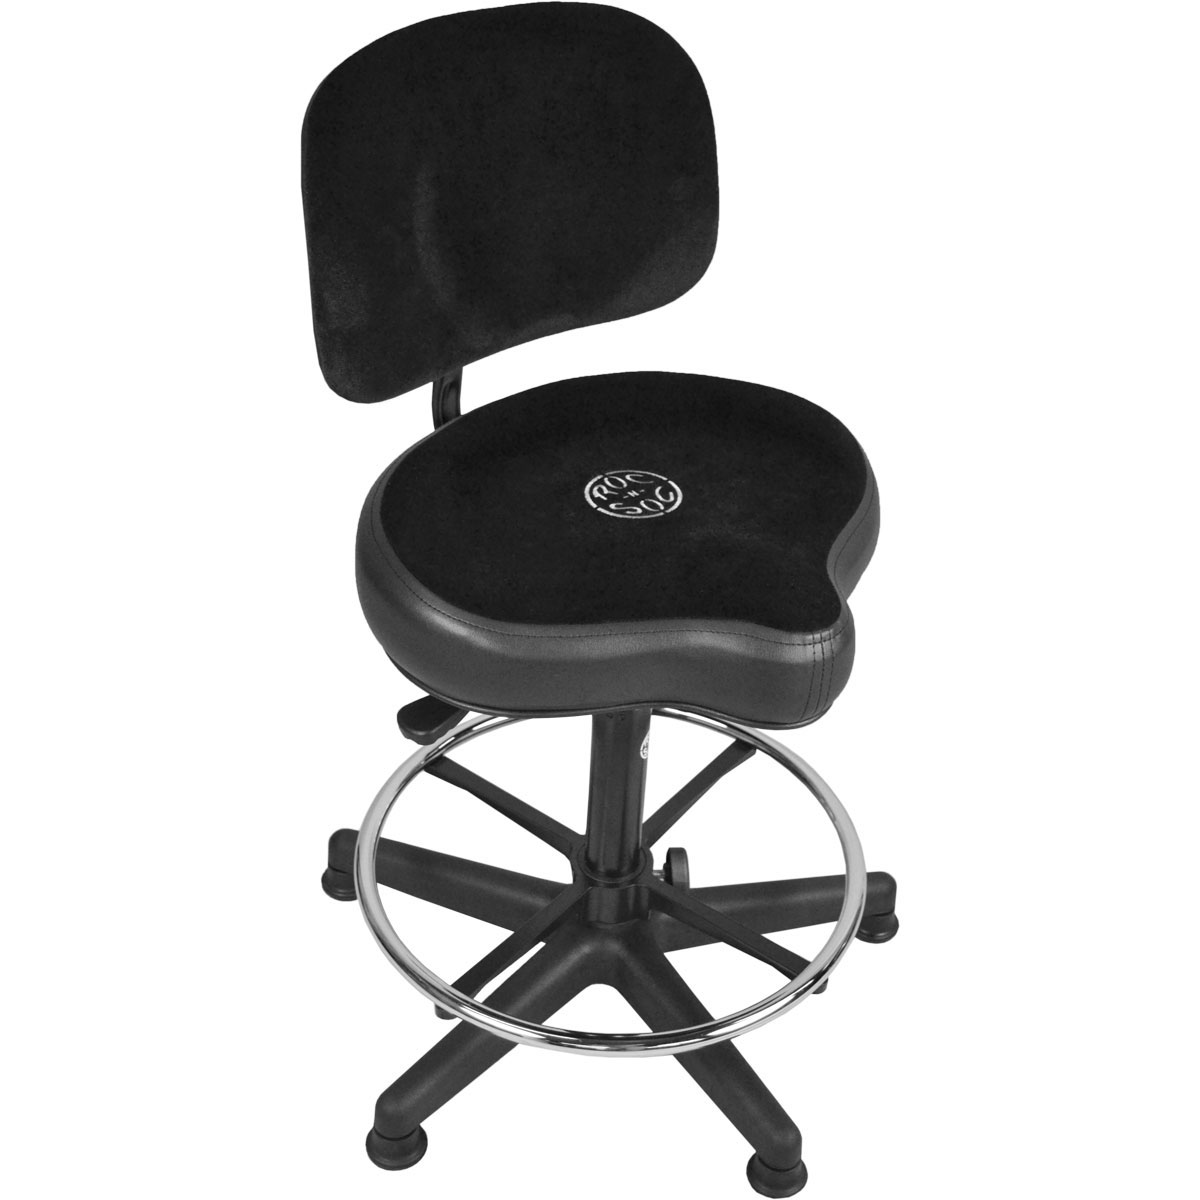 Roc-n-Soc Lunar Gas Lift Drum Throne with Foot Ring, Original Seat, & Back Rest in Black